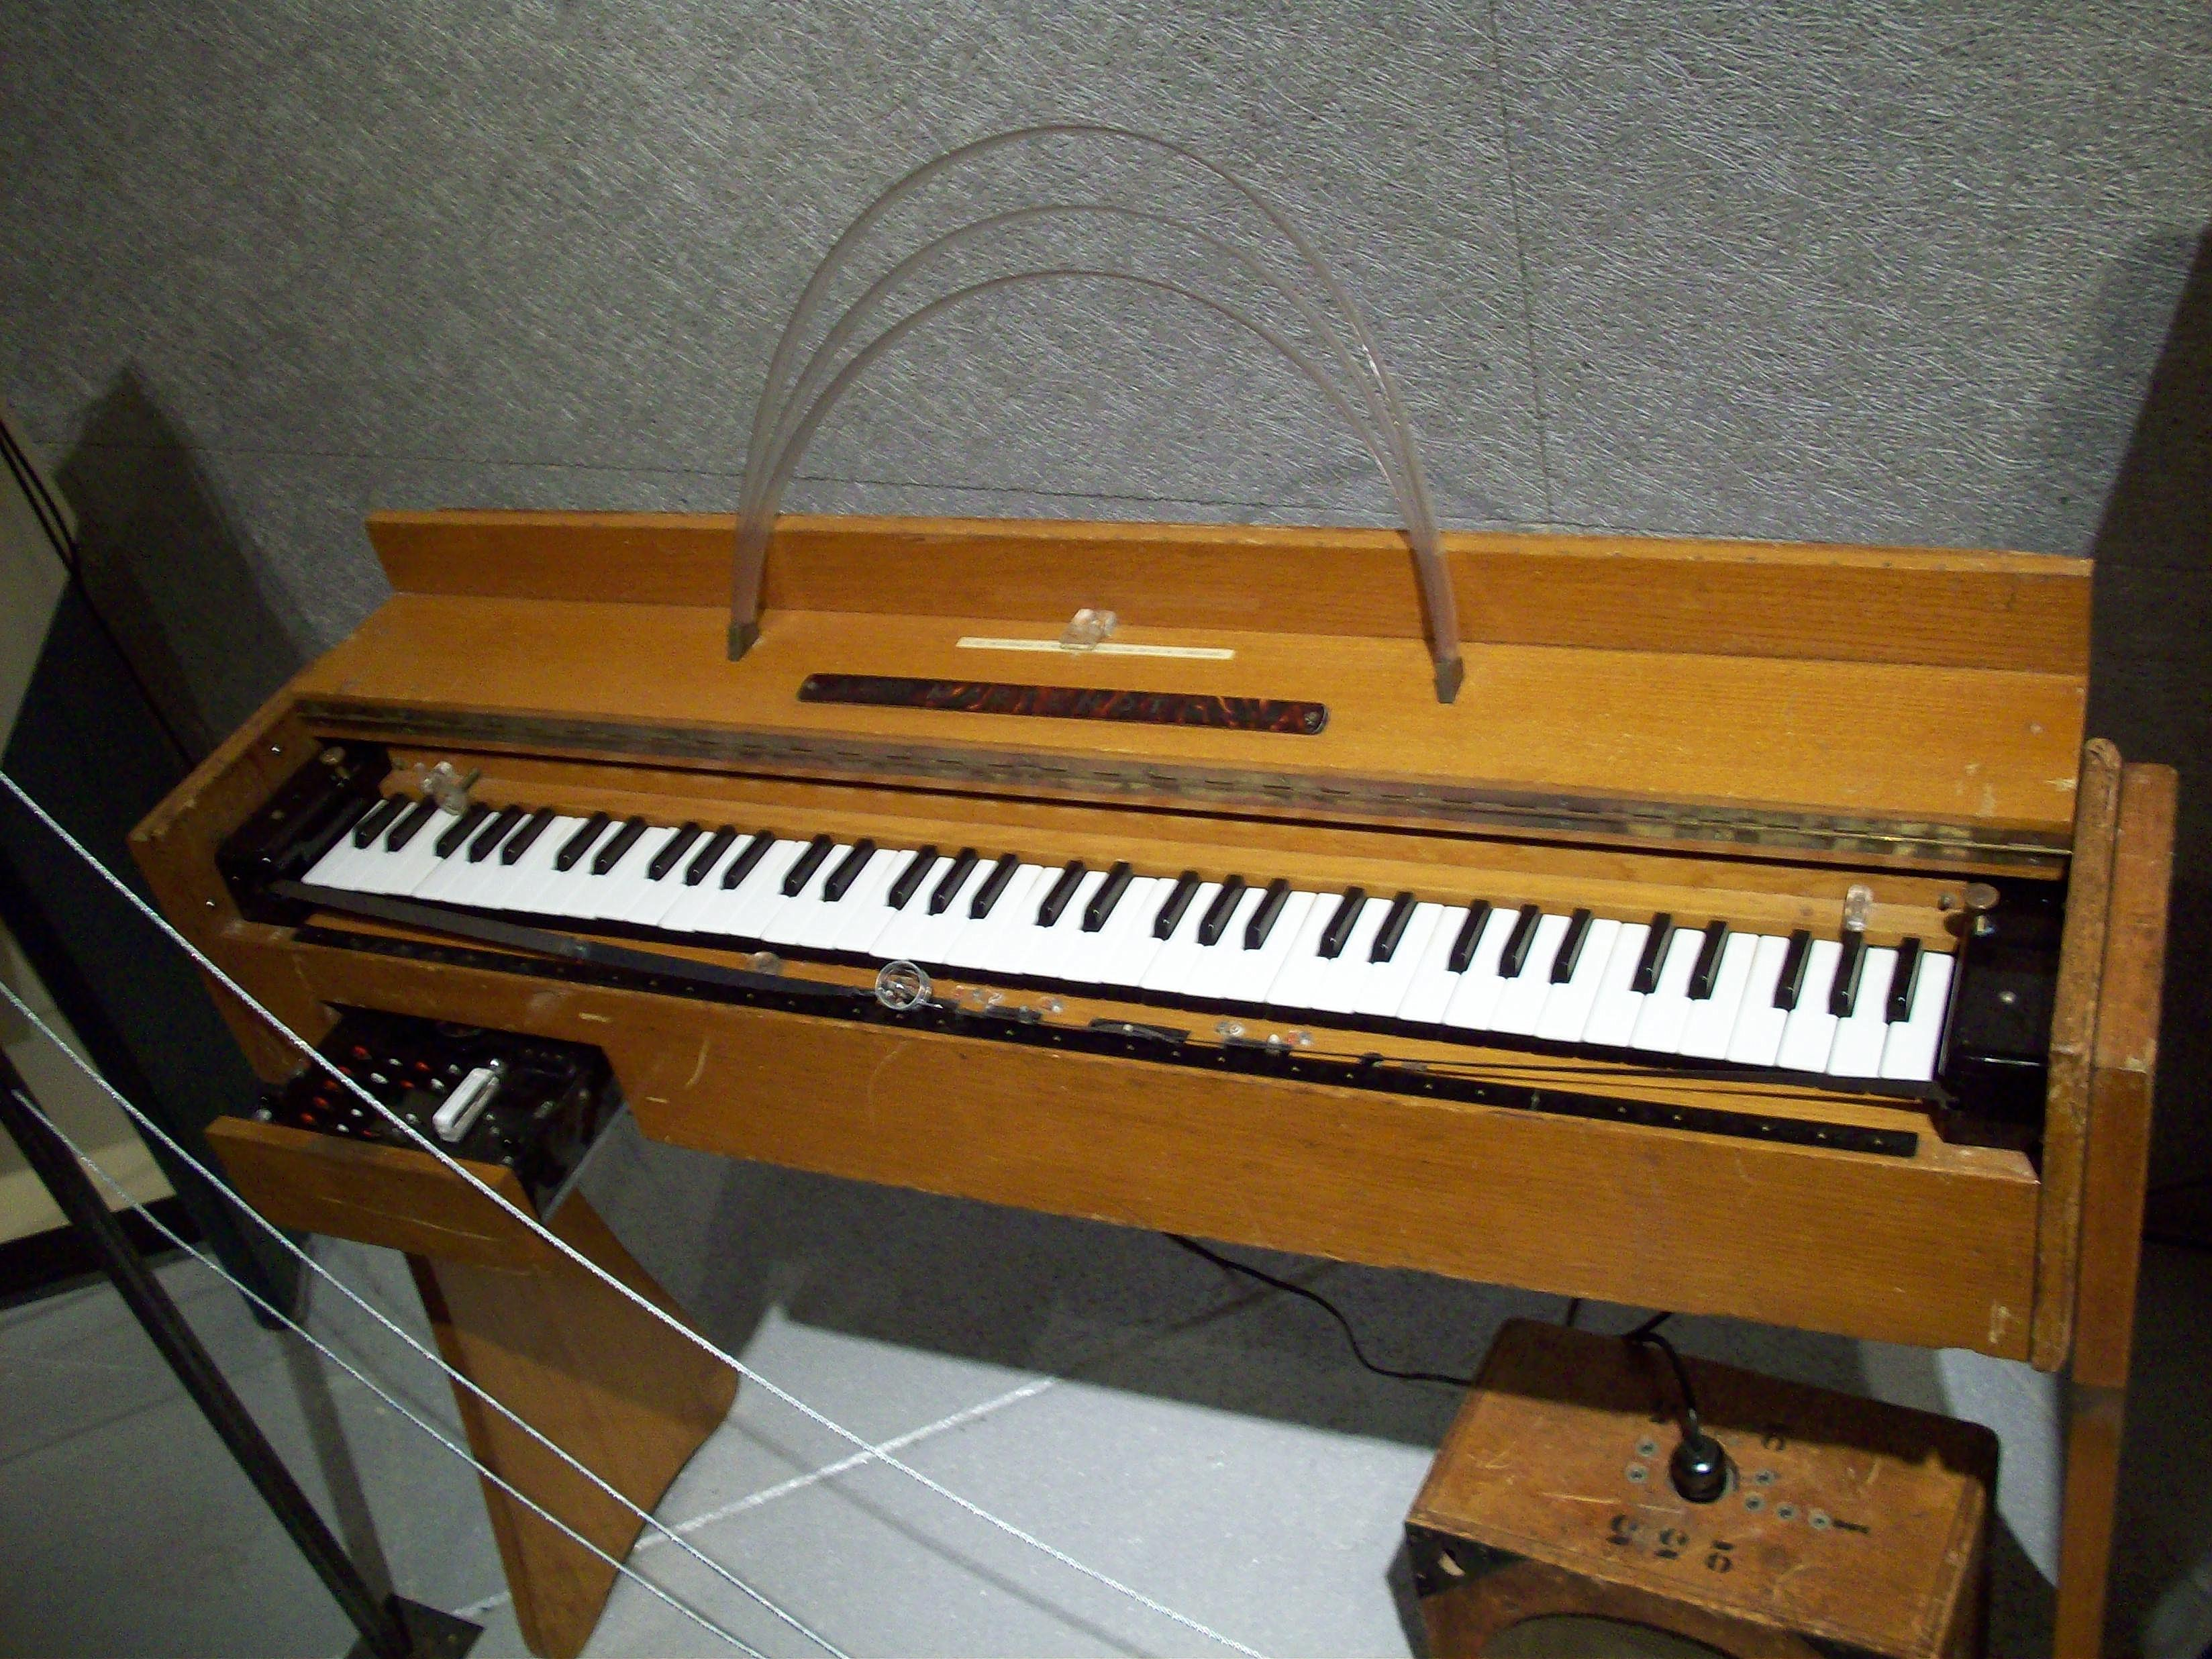 Reading03 besides How To Use a EF86 together with File Ondes Martenot  1960 furthermore Watch likewise Theremin. on vacuum tube circuit